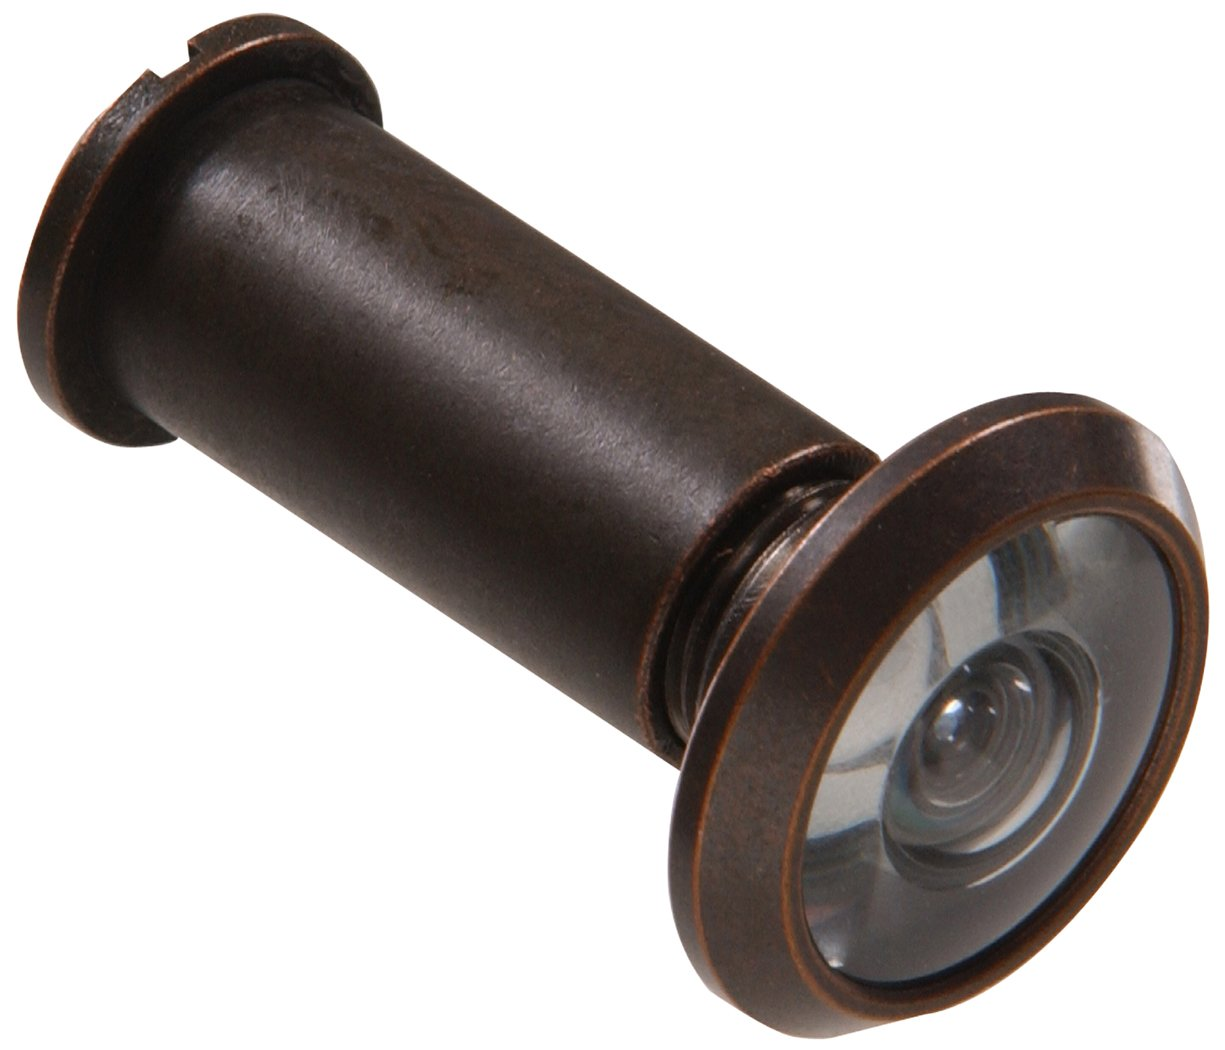 The Hillman Group The Hillman Group 852723 200 Degree Door Viewer - Solid Brass - Antique Bronze Finish 1-Pack